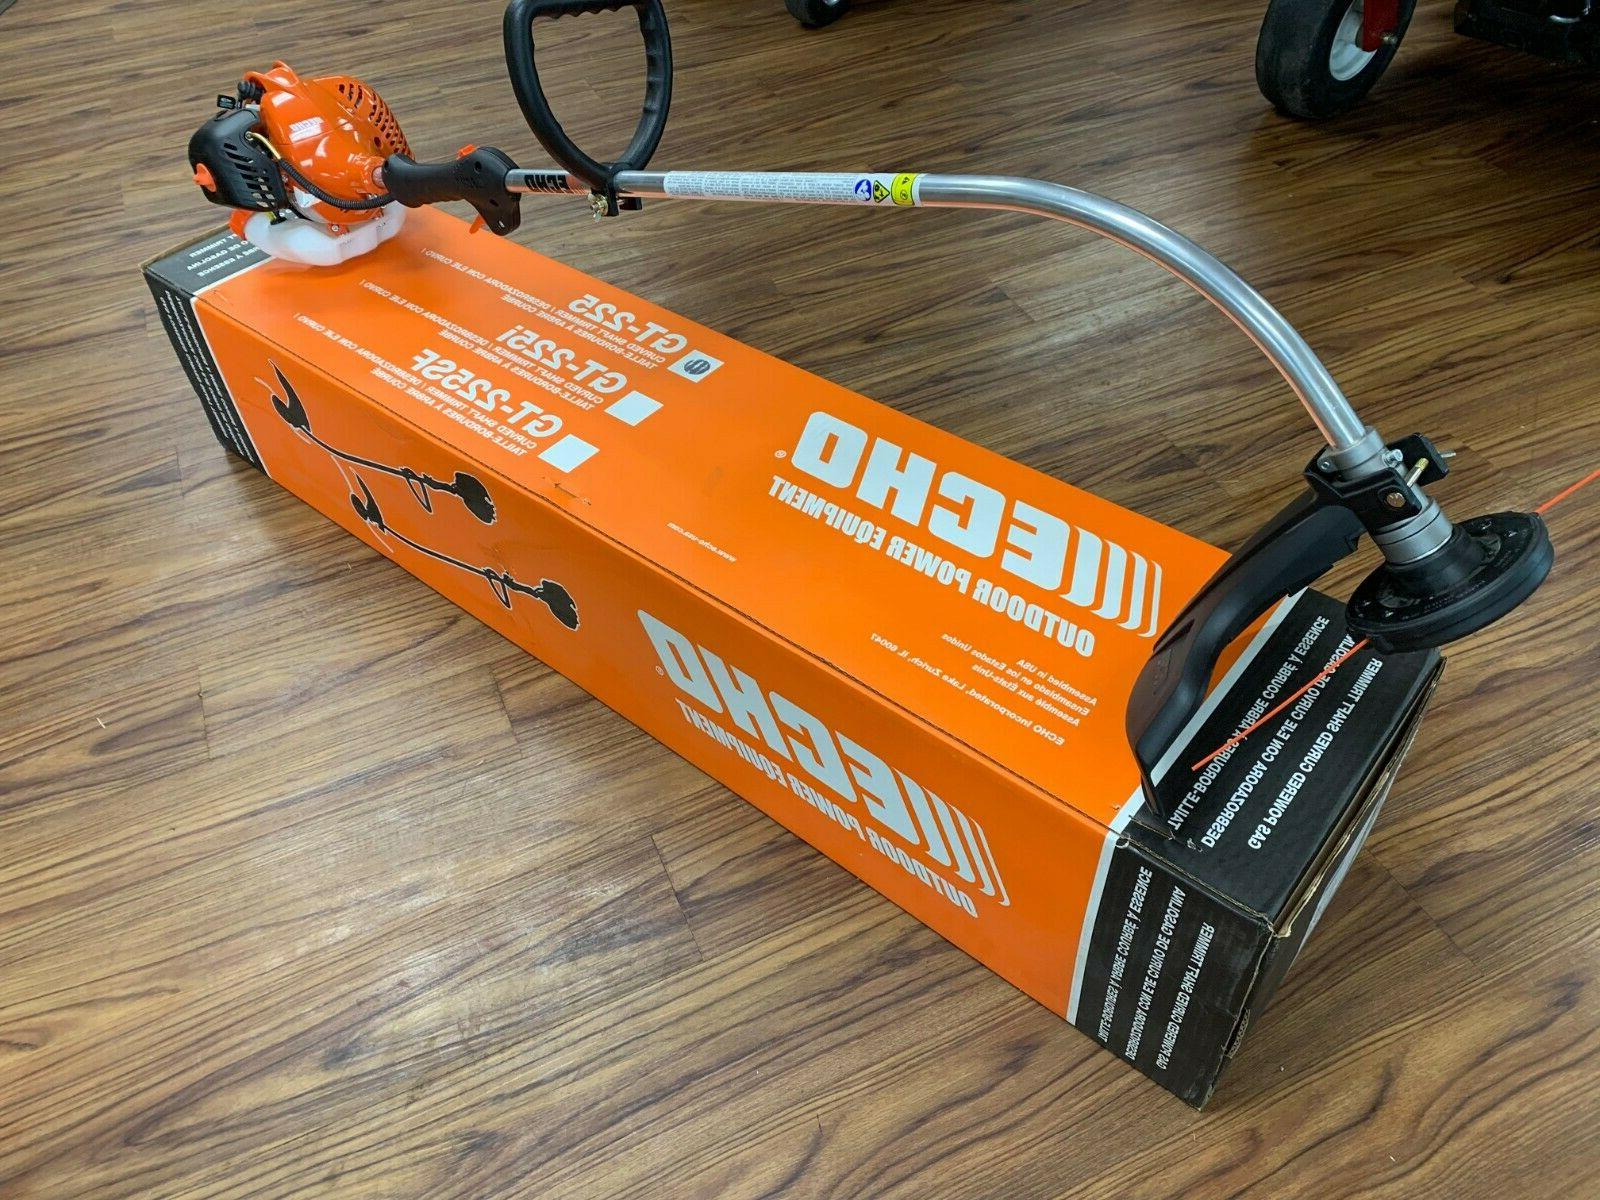 Brand New Echo 225 CURVED WEED TRIMMER 2 stroke